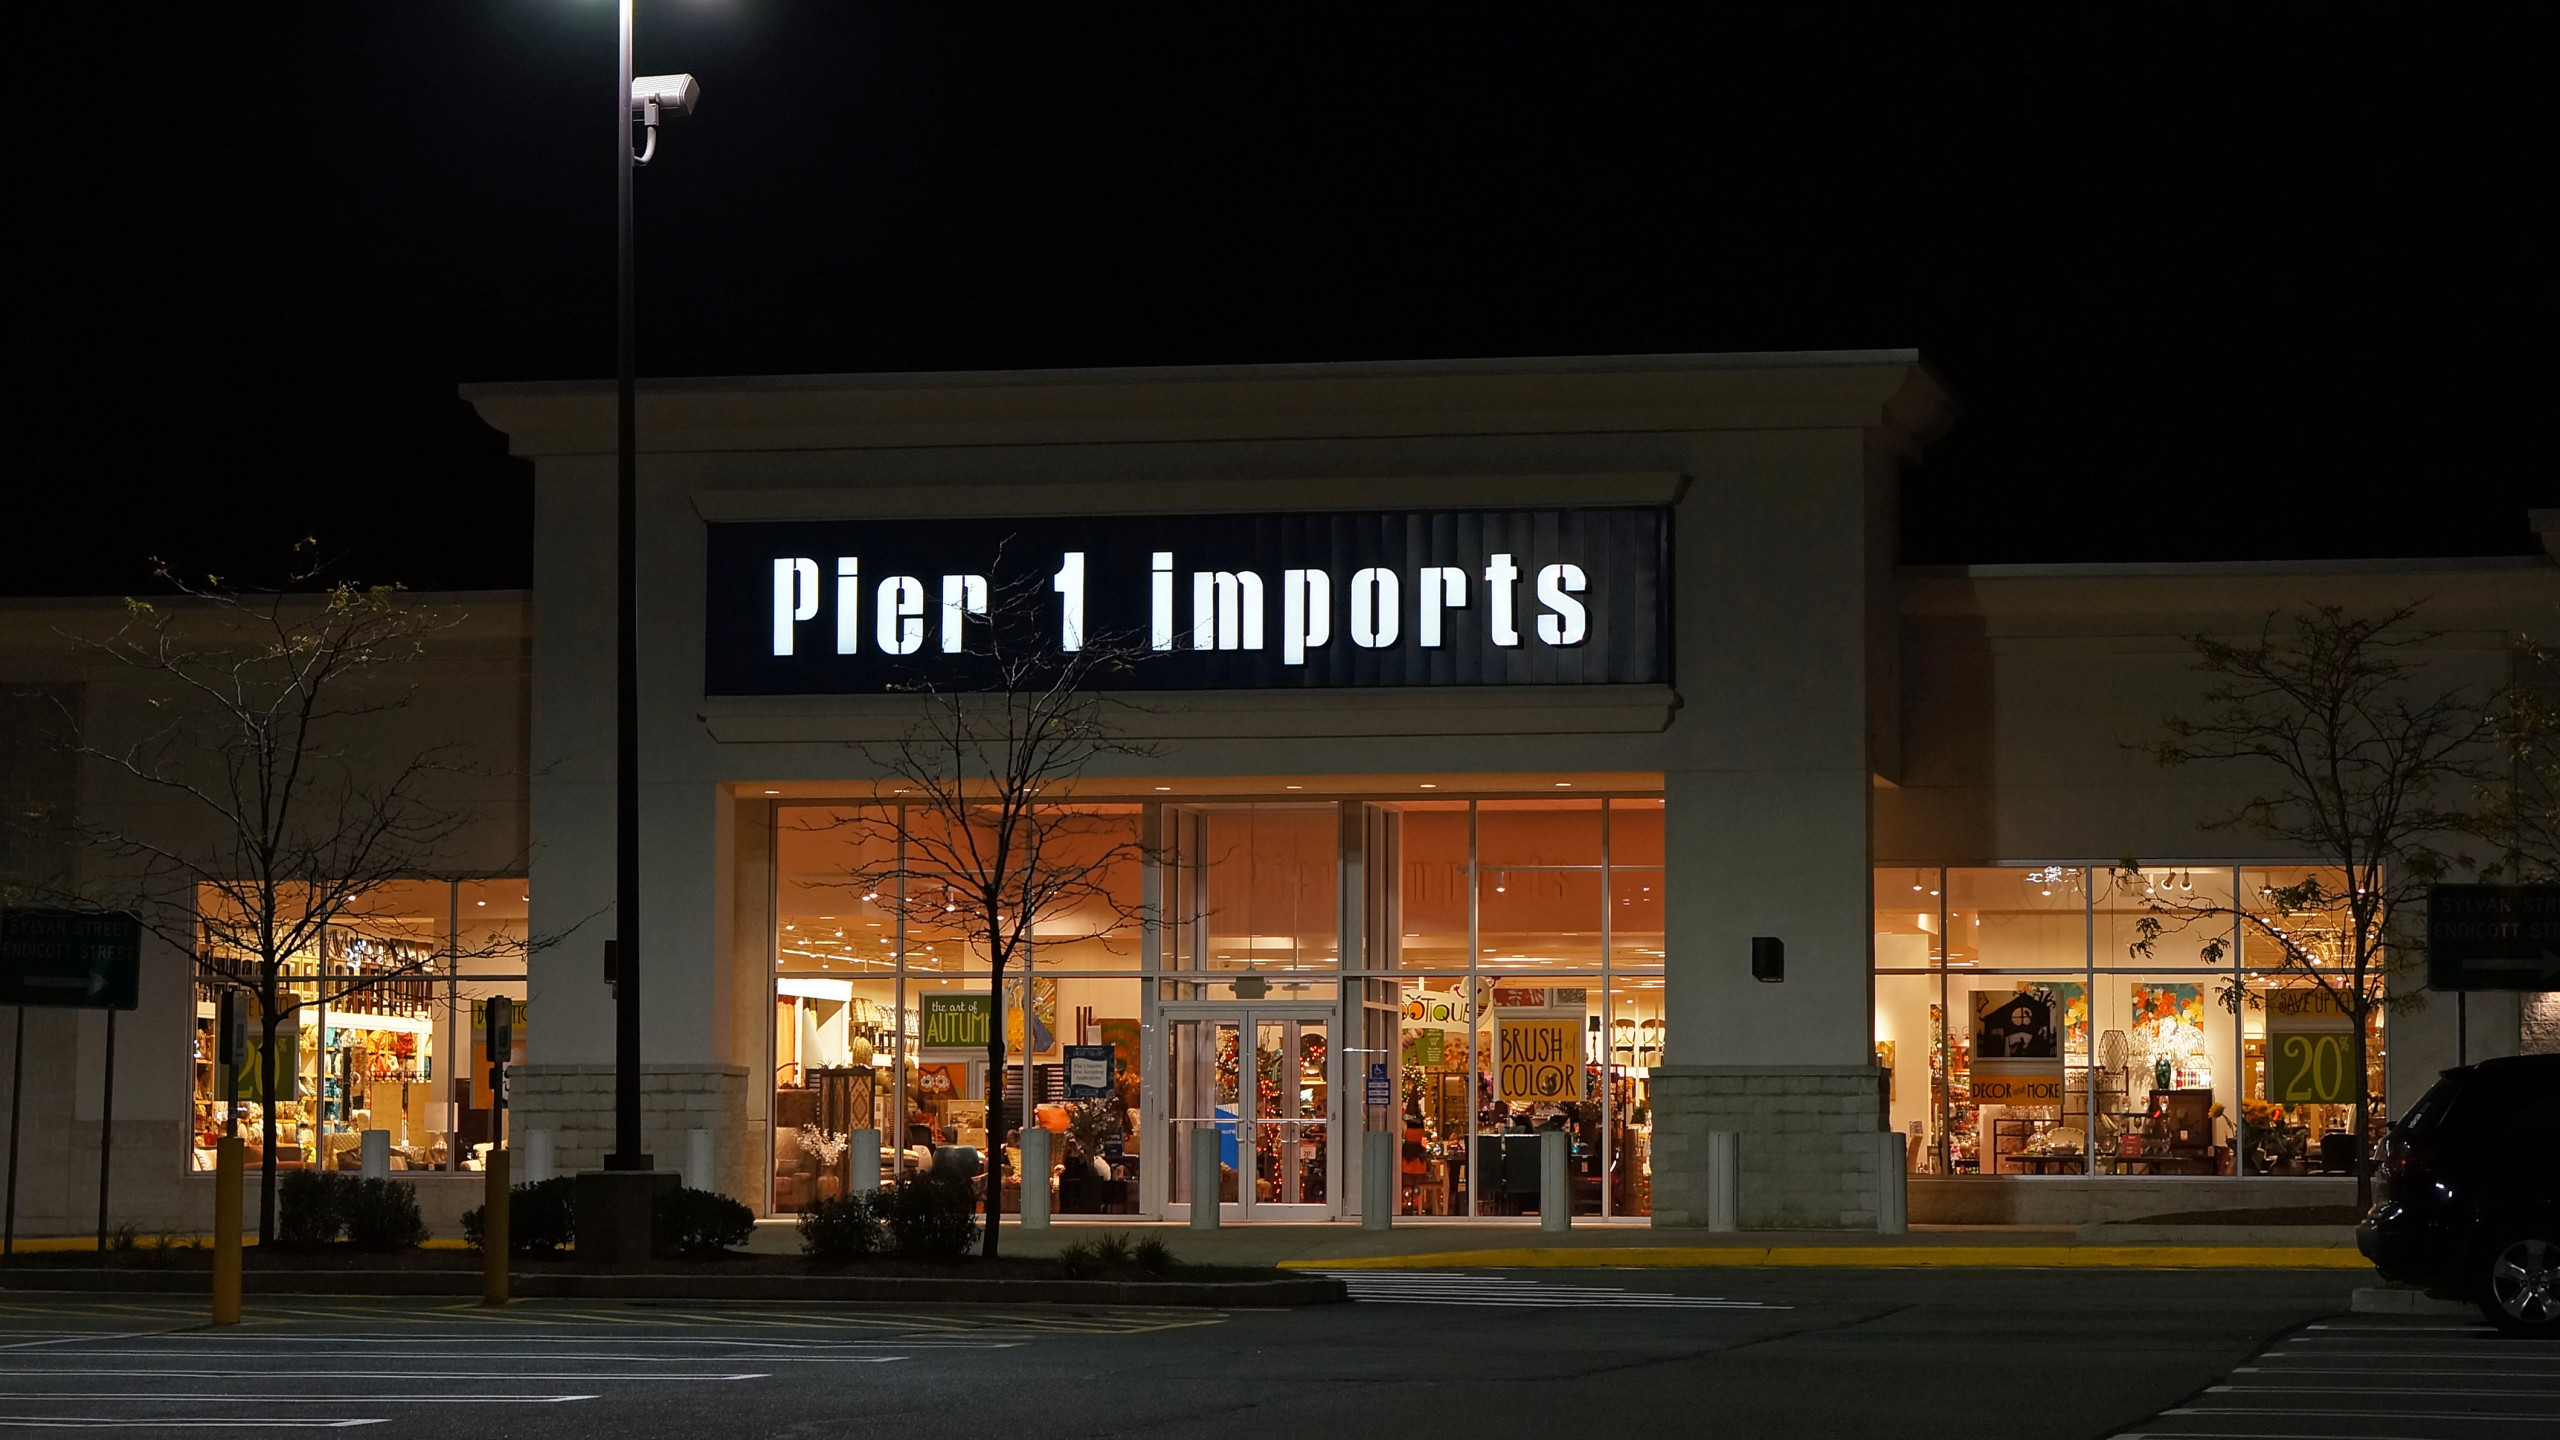 Pier 1 closing stores nationwide after announcing it's millions of dollars in debt